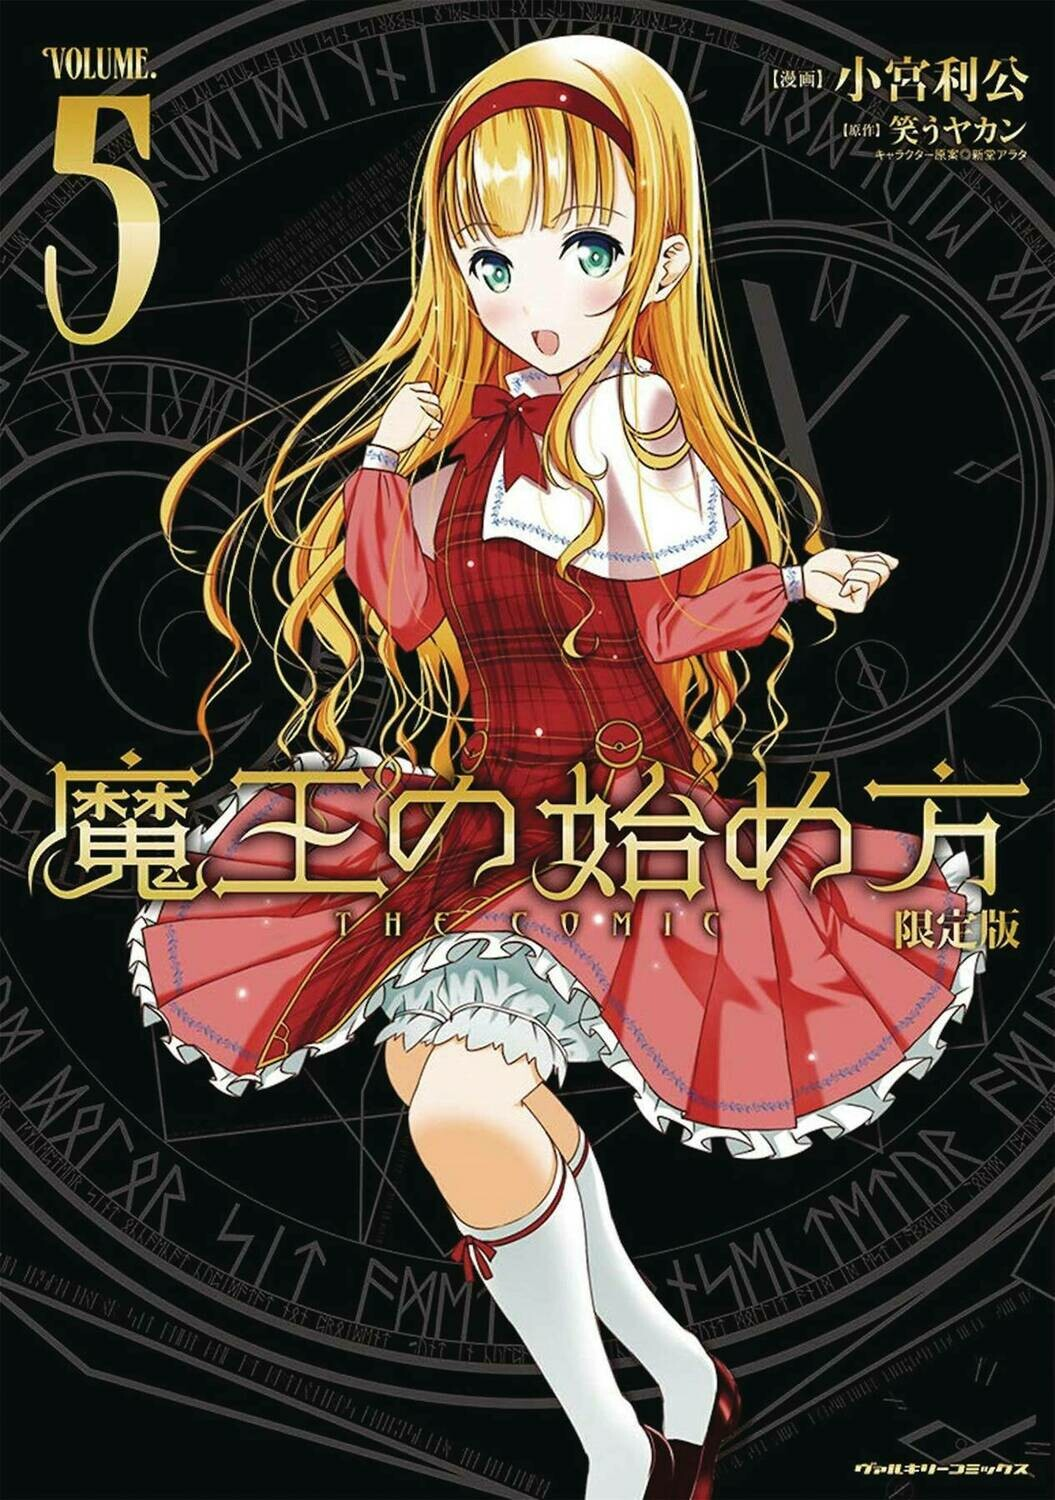 HOW TO BUILD DUNGEON BOOK OF DEMON KING GN VOL 05